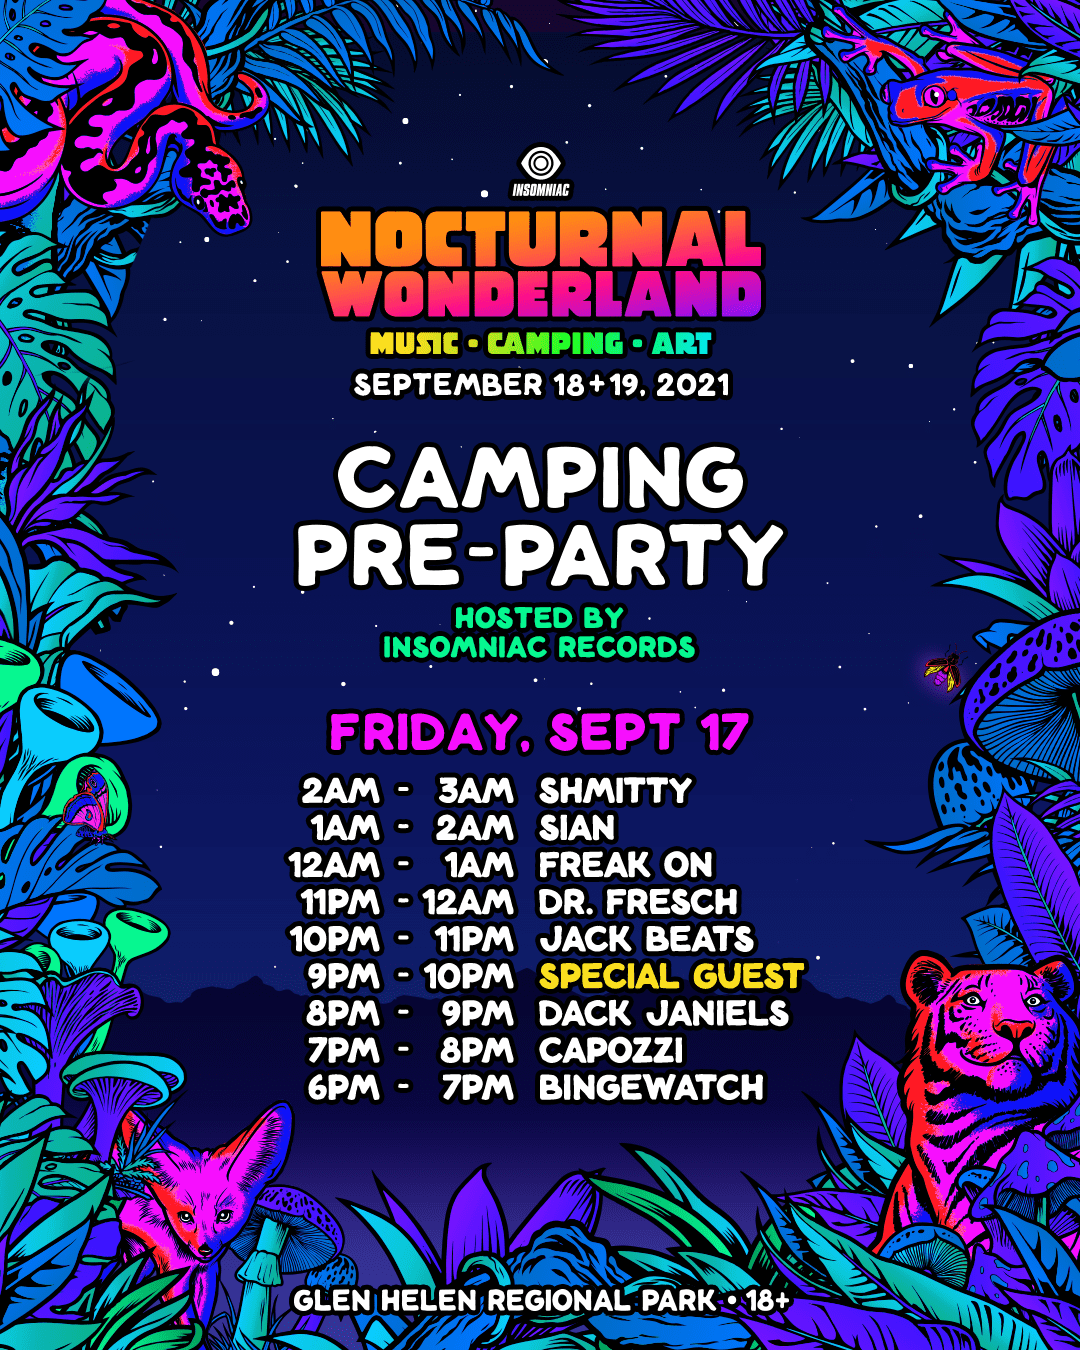 Nocturnal Wonderland Camping Pre-Party